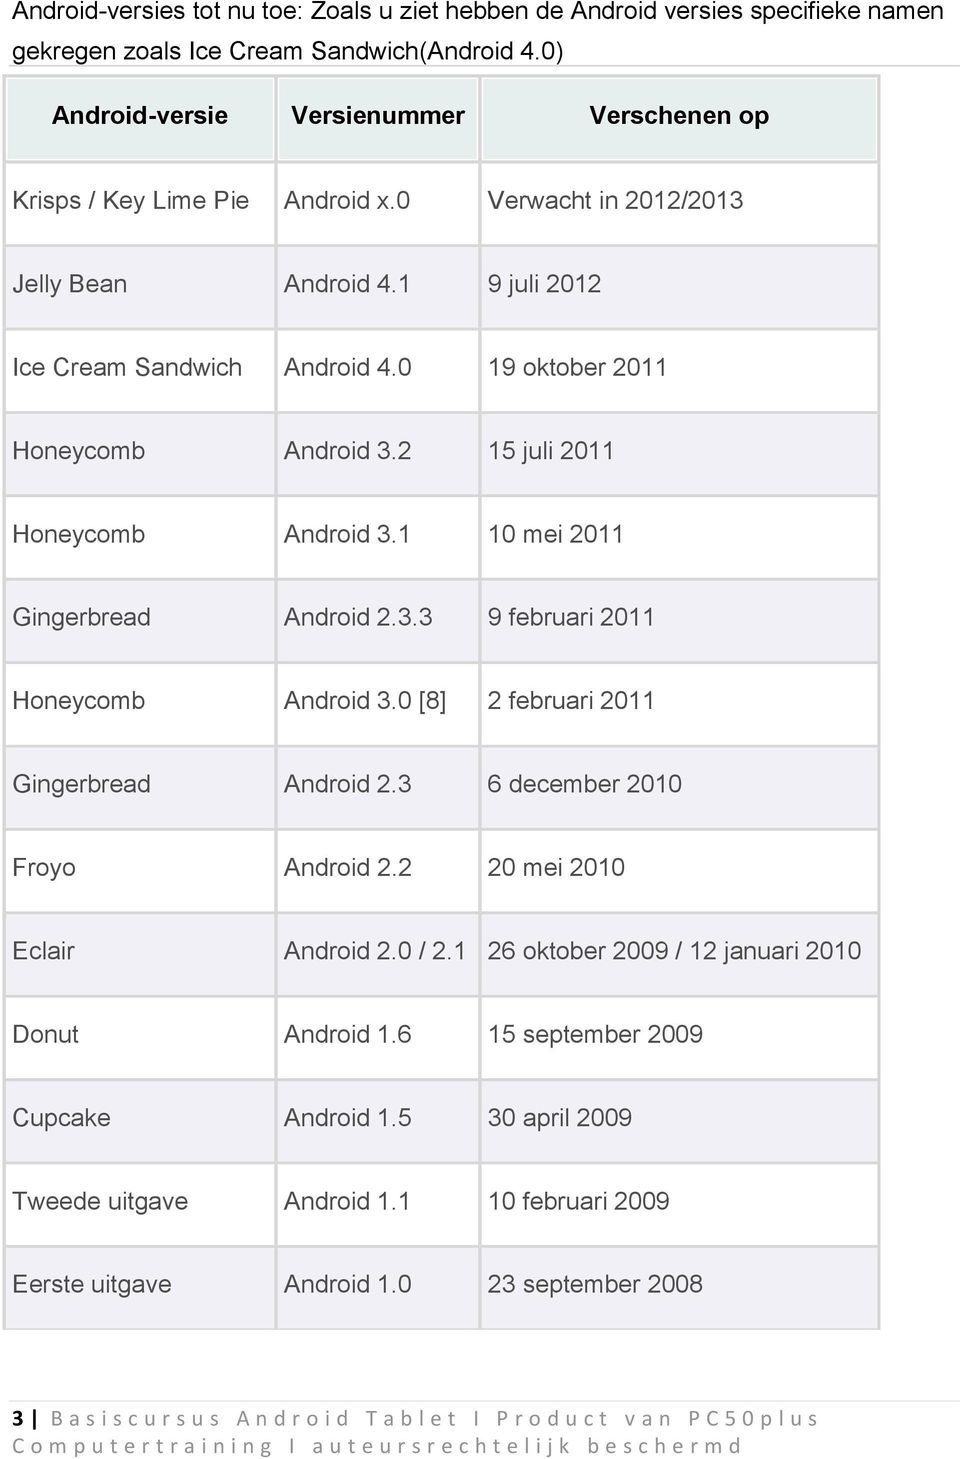 0 19 oktober 2011 Honeycomb Android 3.2 15 juli 2011 Honeycomb Android 3.1 10 mei 2011 Gingerbread Android 2.3.3 9 februari 2011 Honeycomb Android 3.0 [8] 2 februari 2011 Gingerbread Android 2.